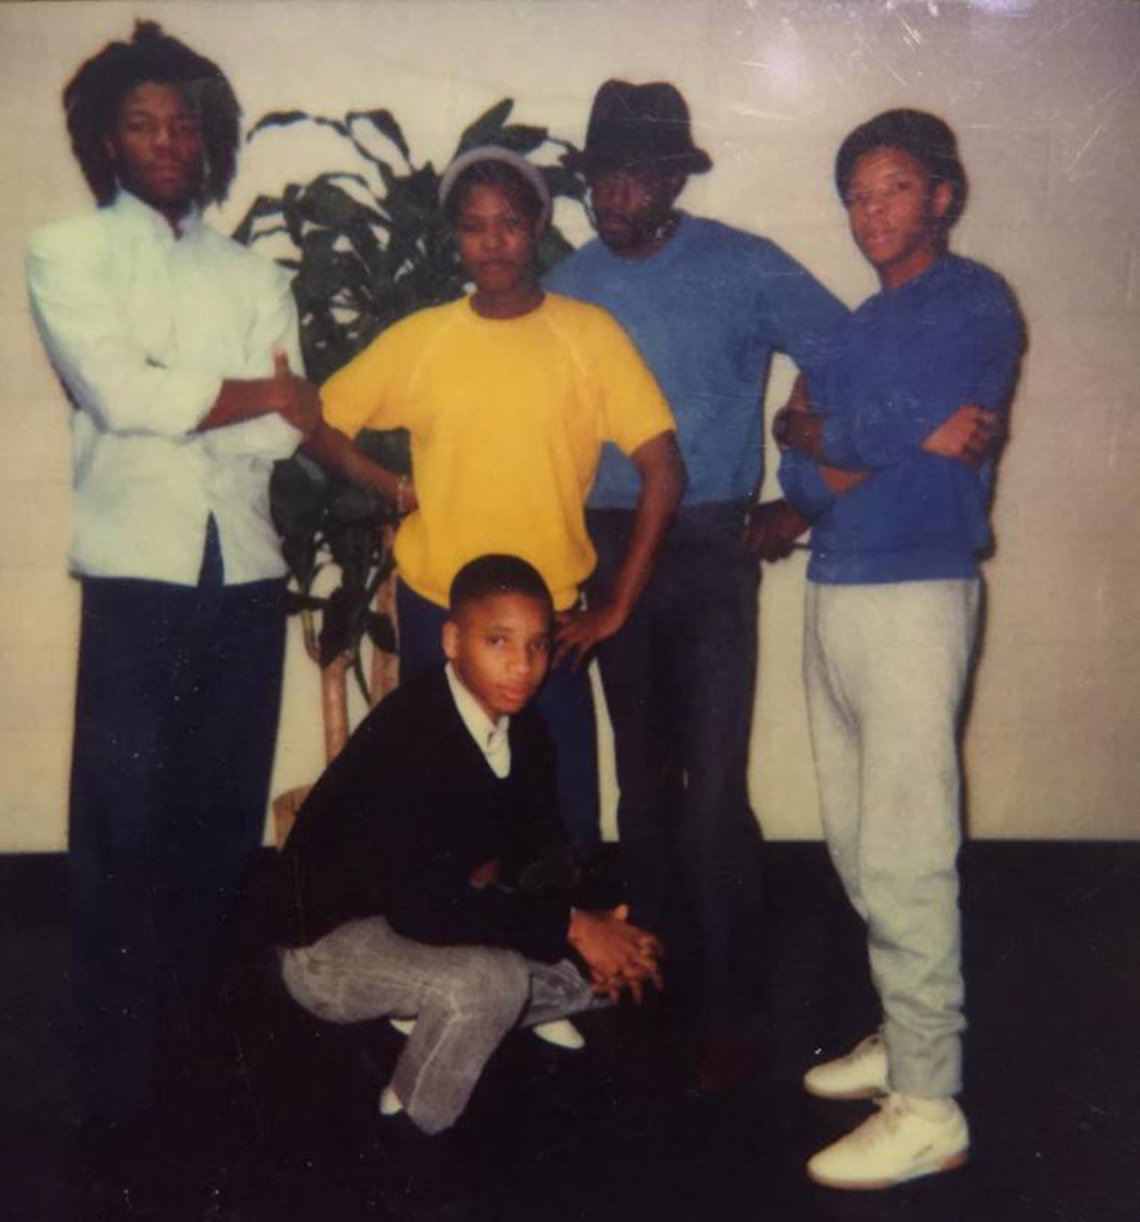 An undated photo taken during a prison visit. Moochie (left) with brothers Willie (front) and Douglas (right), cousin Sharon Reid, and an unidentified friend.